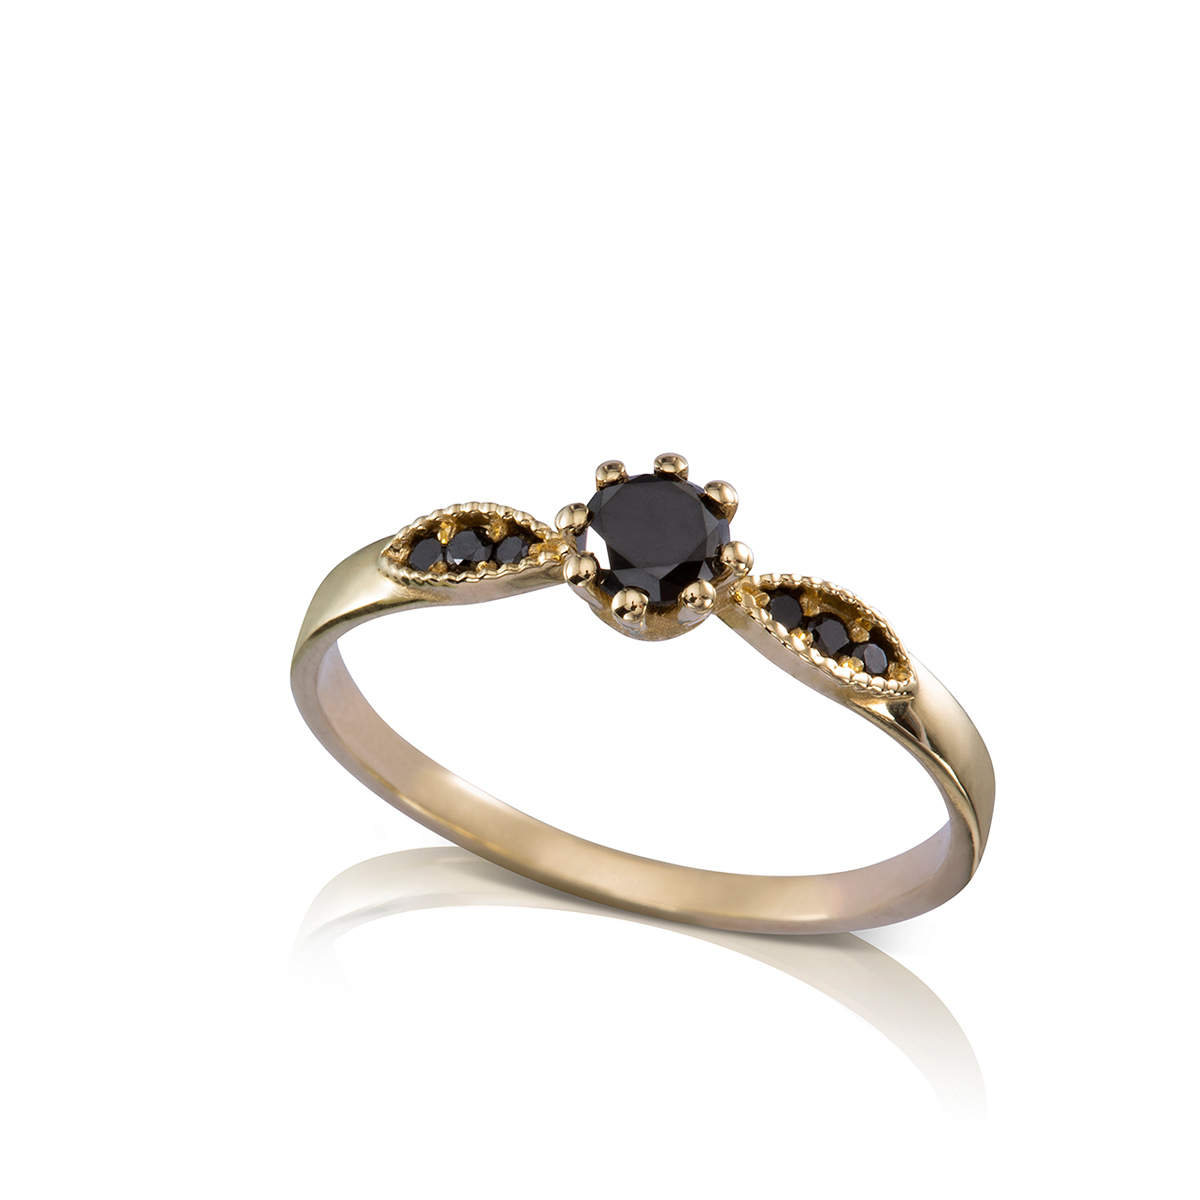 Vintage style gold and black diamond ring